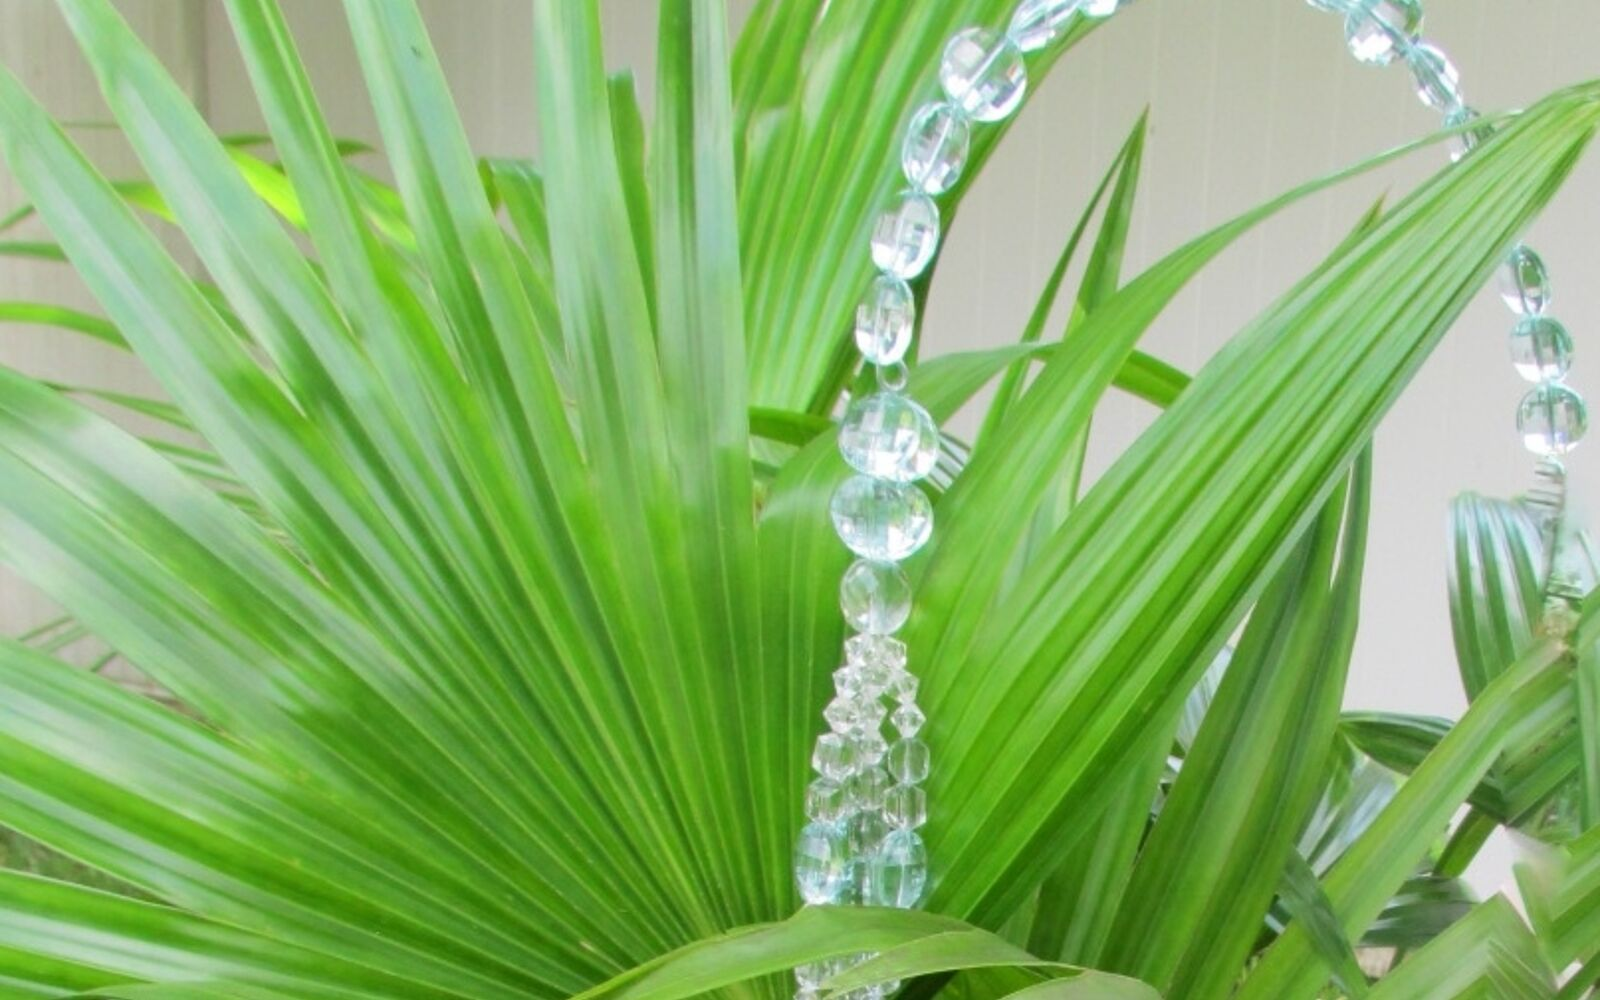 s 30 ways for you to style your garden, Make Shimmer With Crystals On Greenery